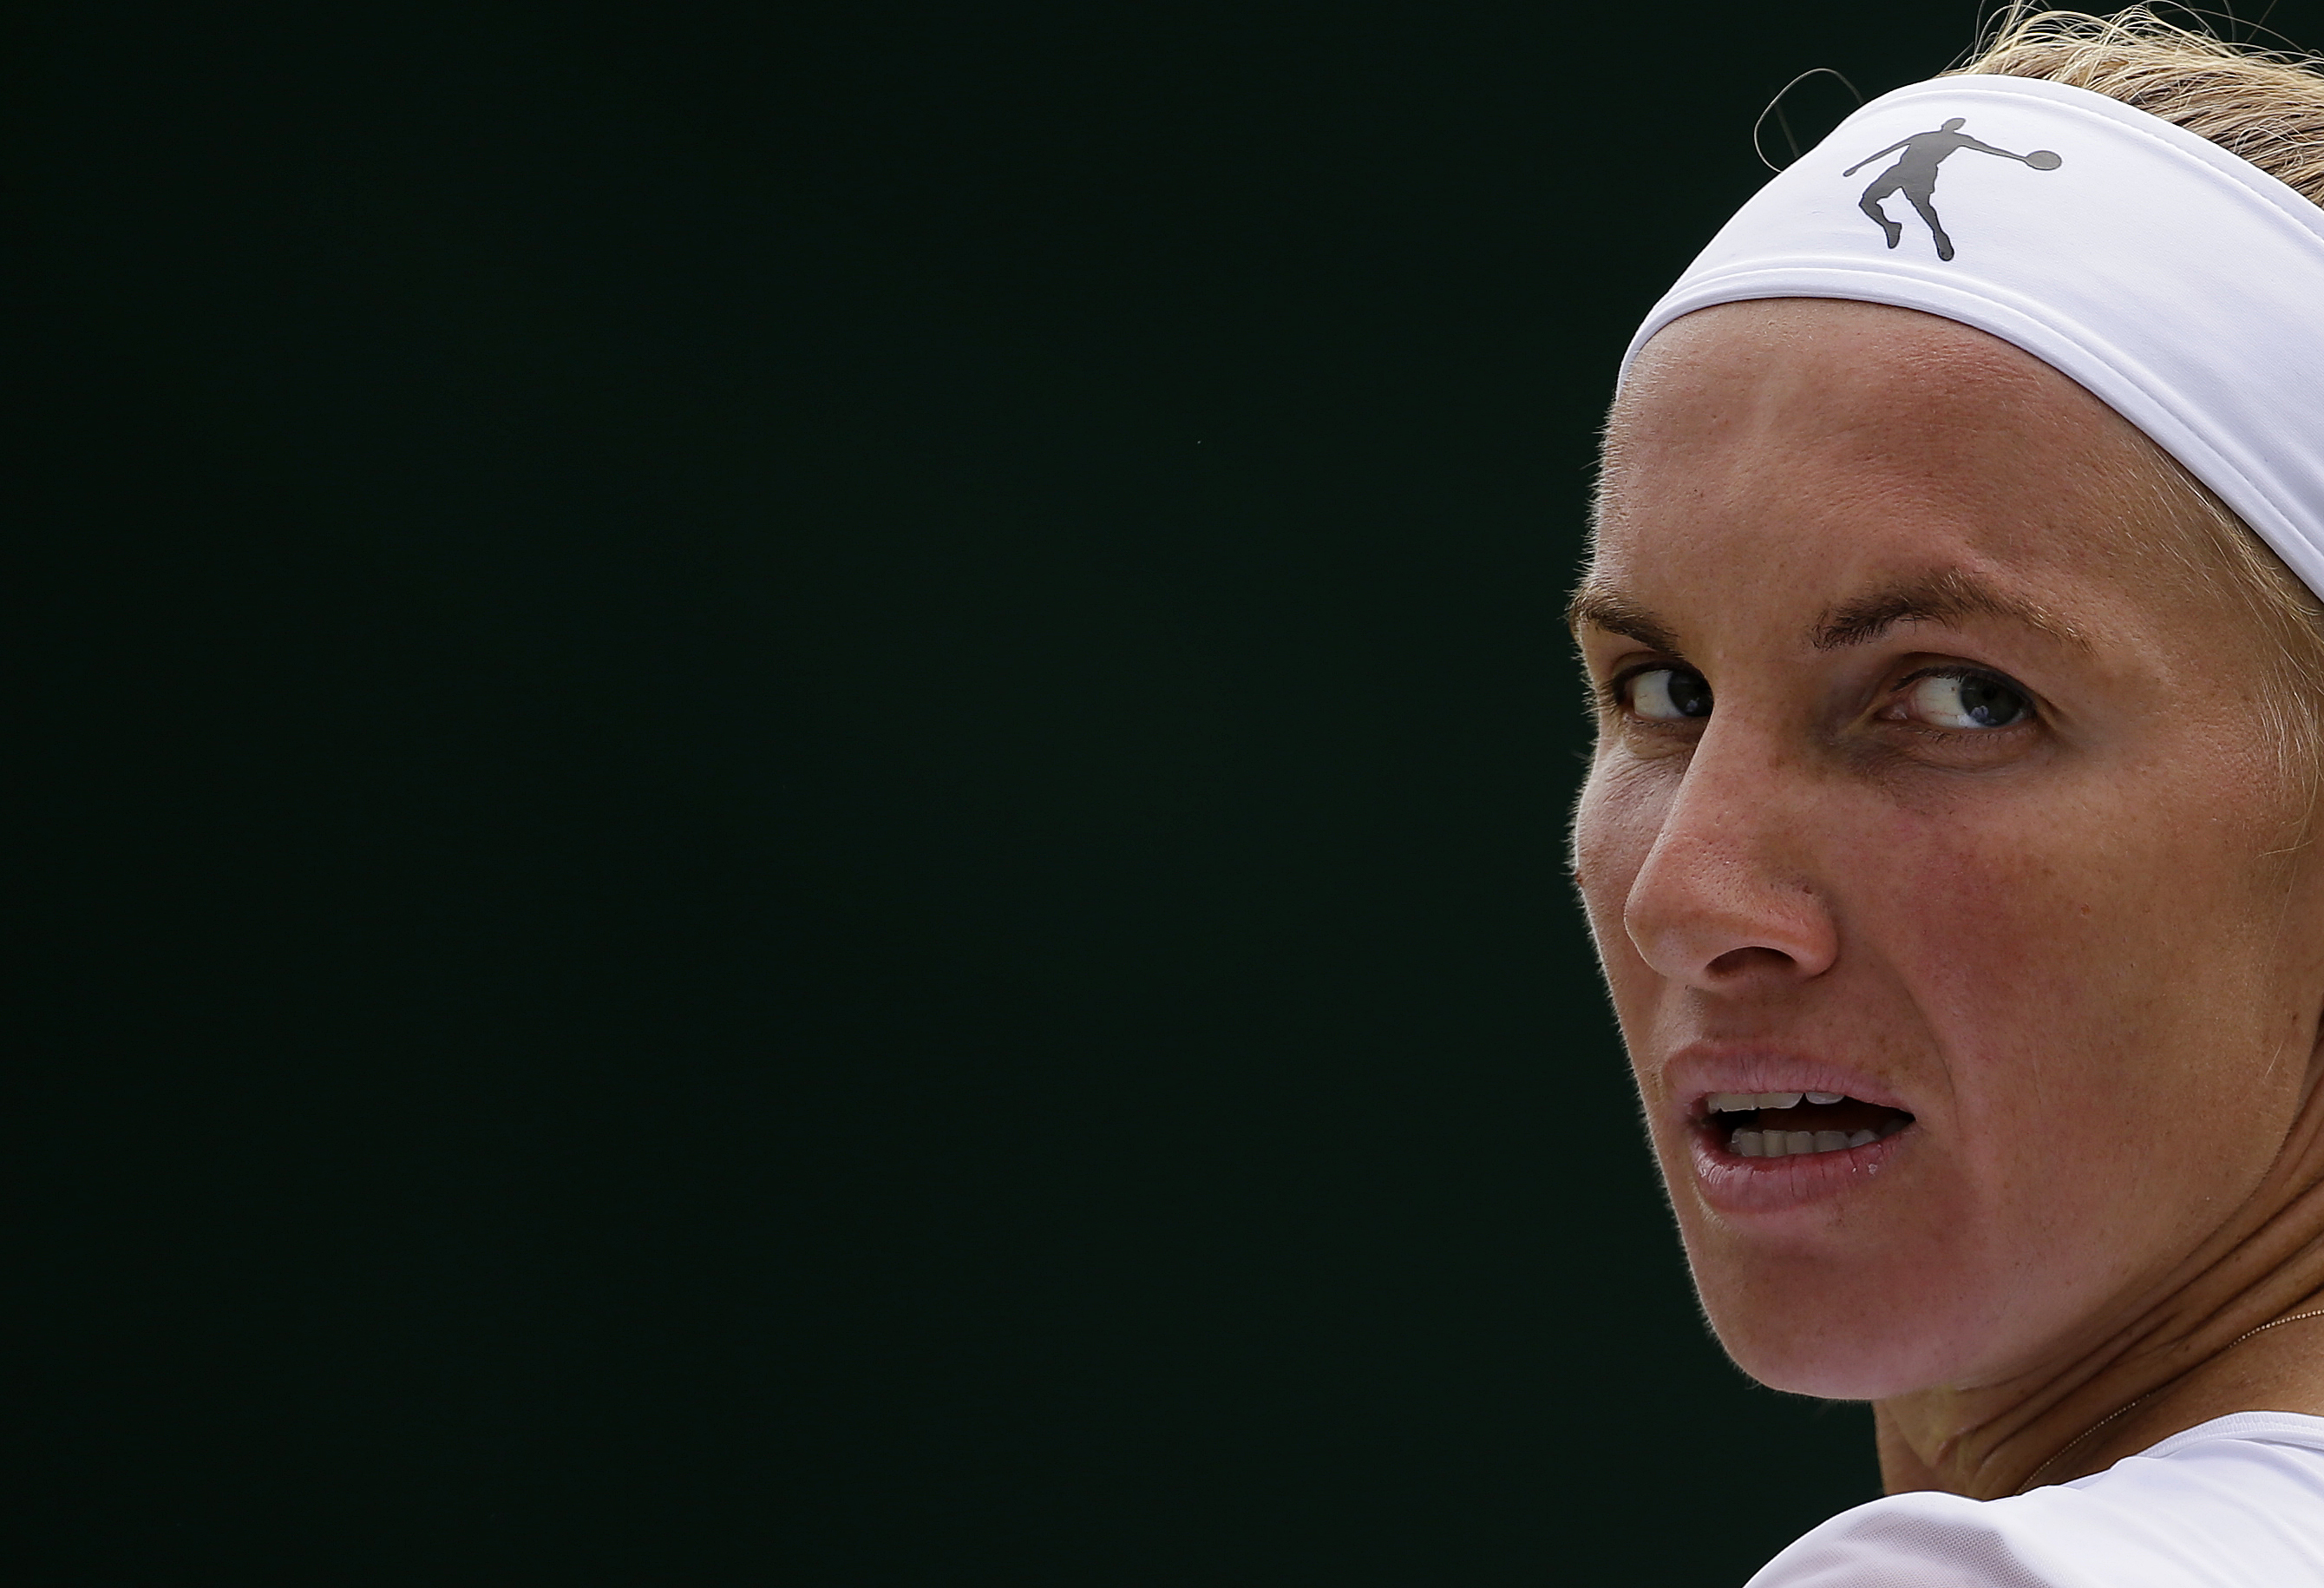 Russia's Svetlana Kuznetsova looks around as she plays Slovenia's Polona Hercog during their Women's singles match on day six at the Wimbledon Tennis Championships in London Saturday, July 8, 2017. (AP Photo/Alastair Grant)